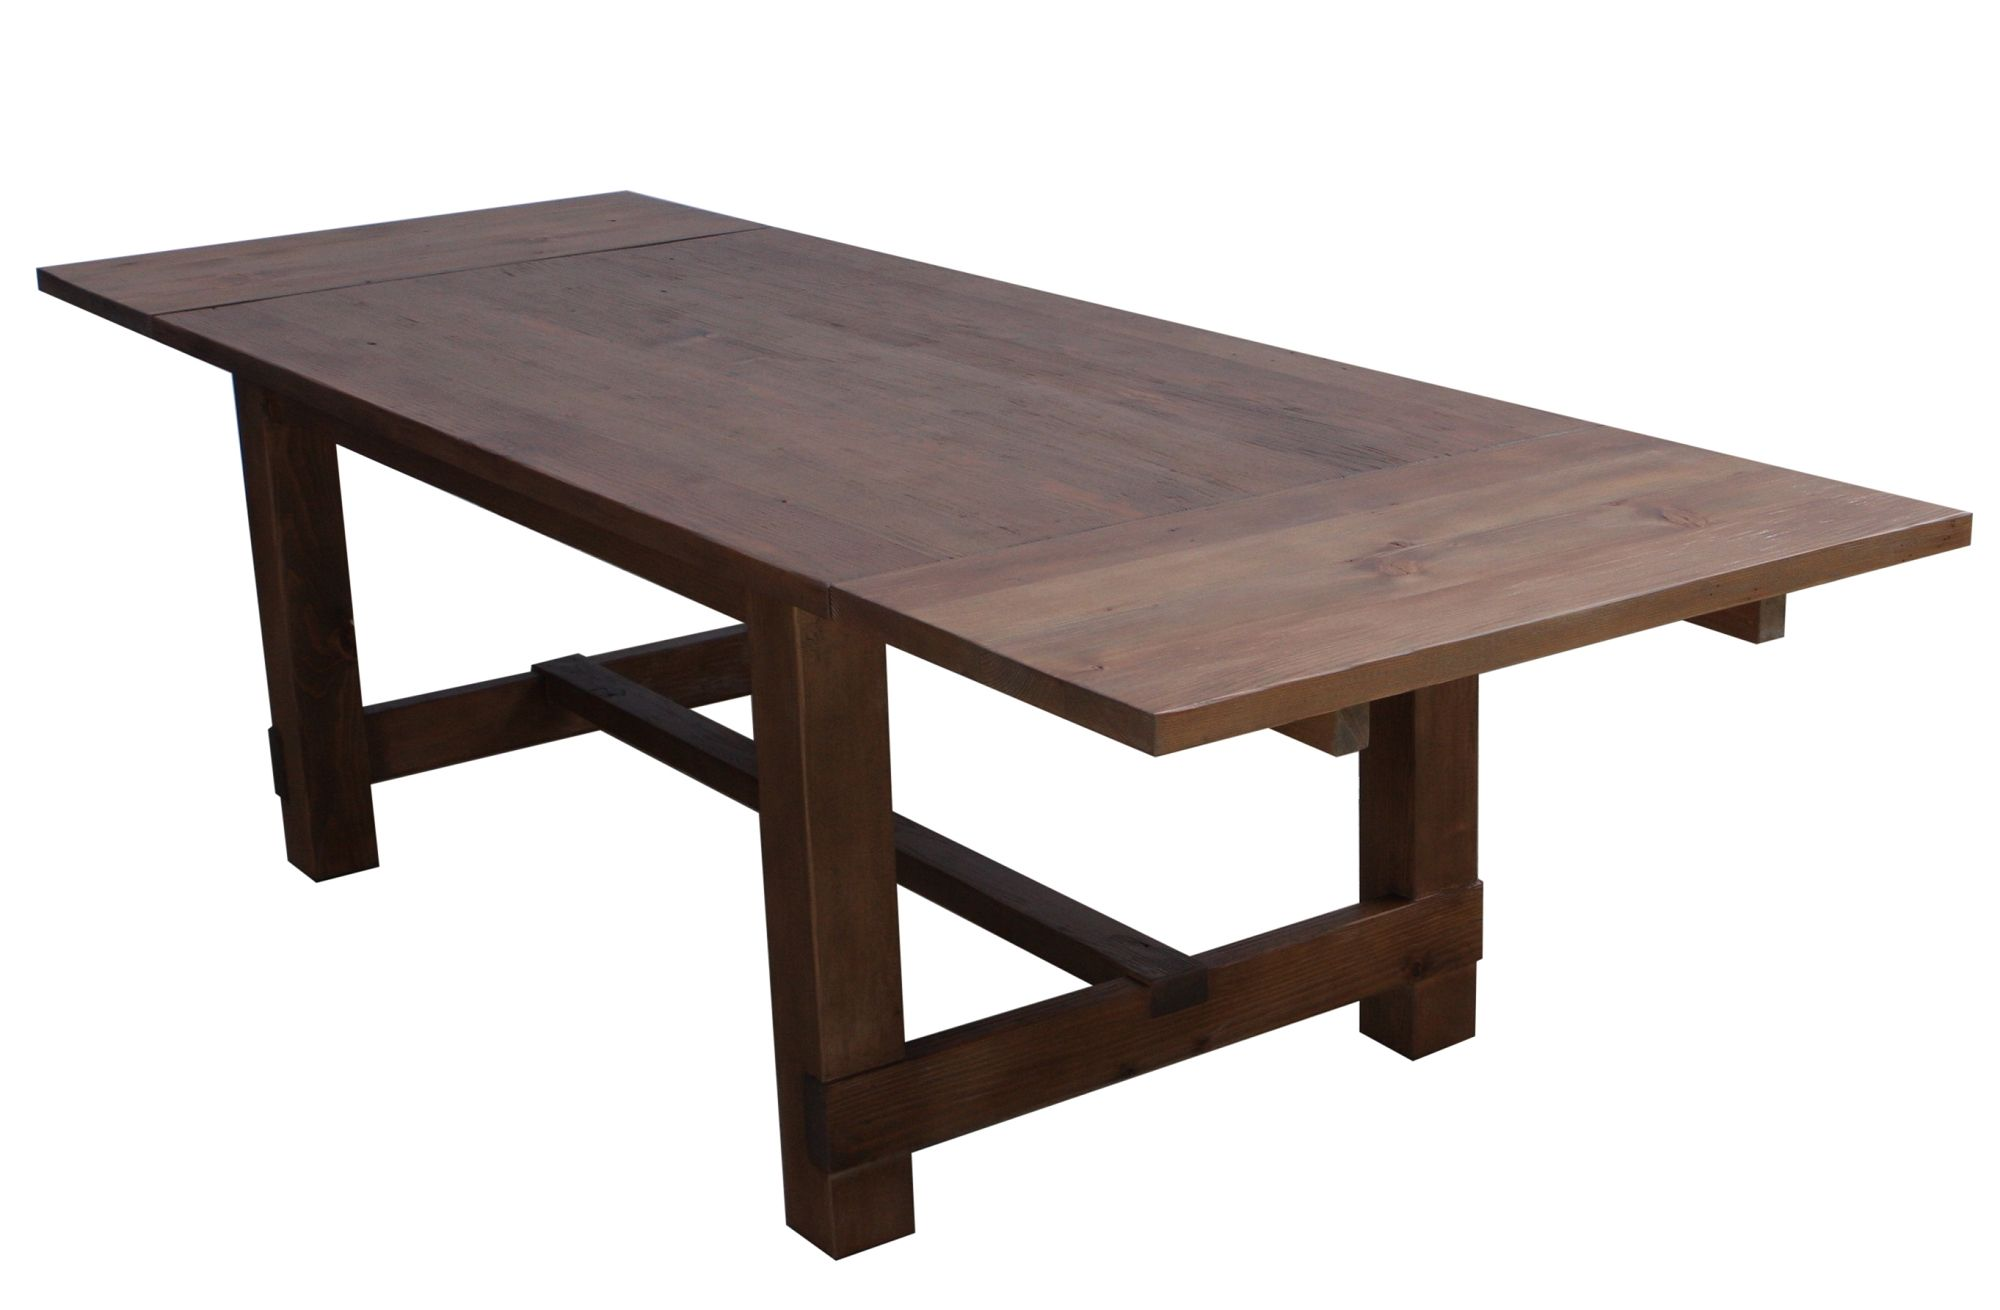 New England Farm Table This Table Is Shown With 2 Leaves 1 Thick Solid Wood  Top Built With Traditional Mortise U0026 Tenon Joinery